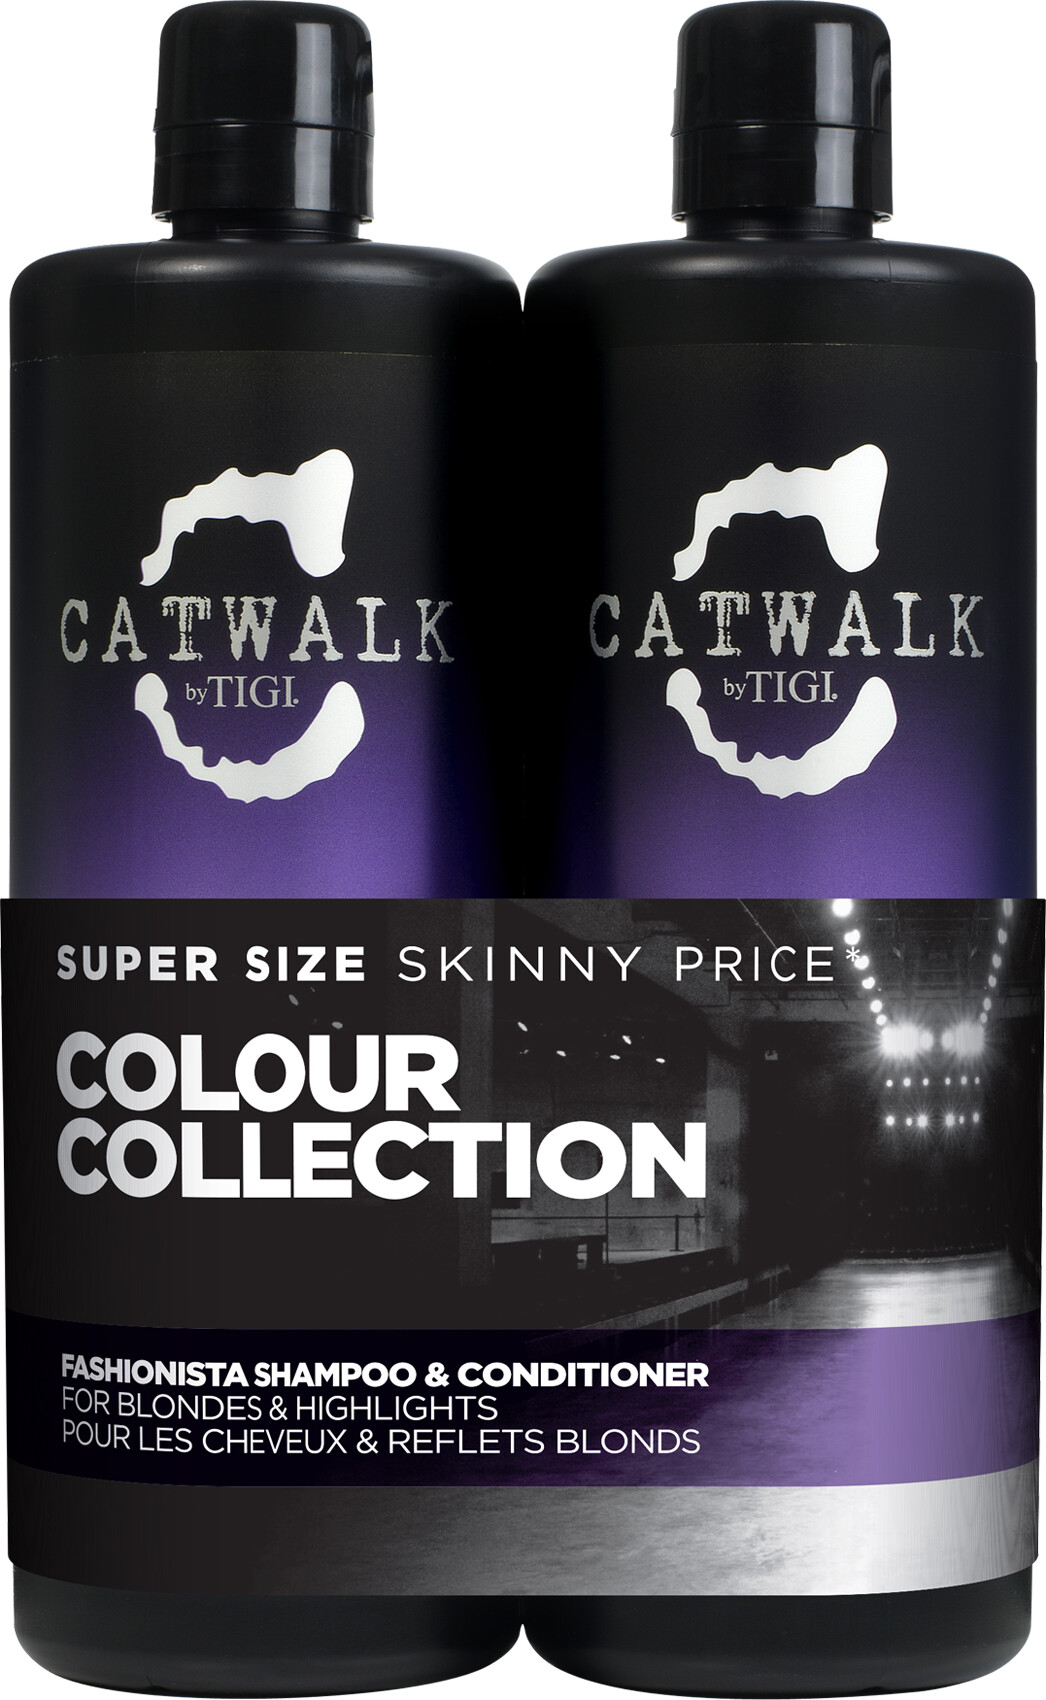 TIGI Catwalk Fashionista Shampoo and Conditioner Tween Duo 2 x 750ml